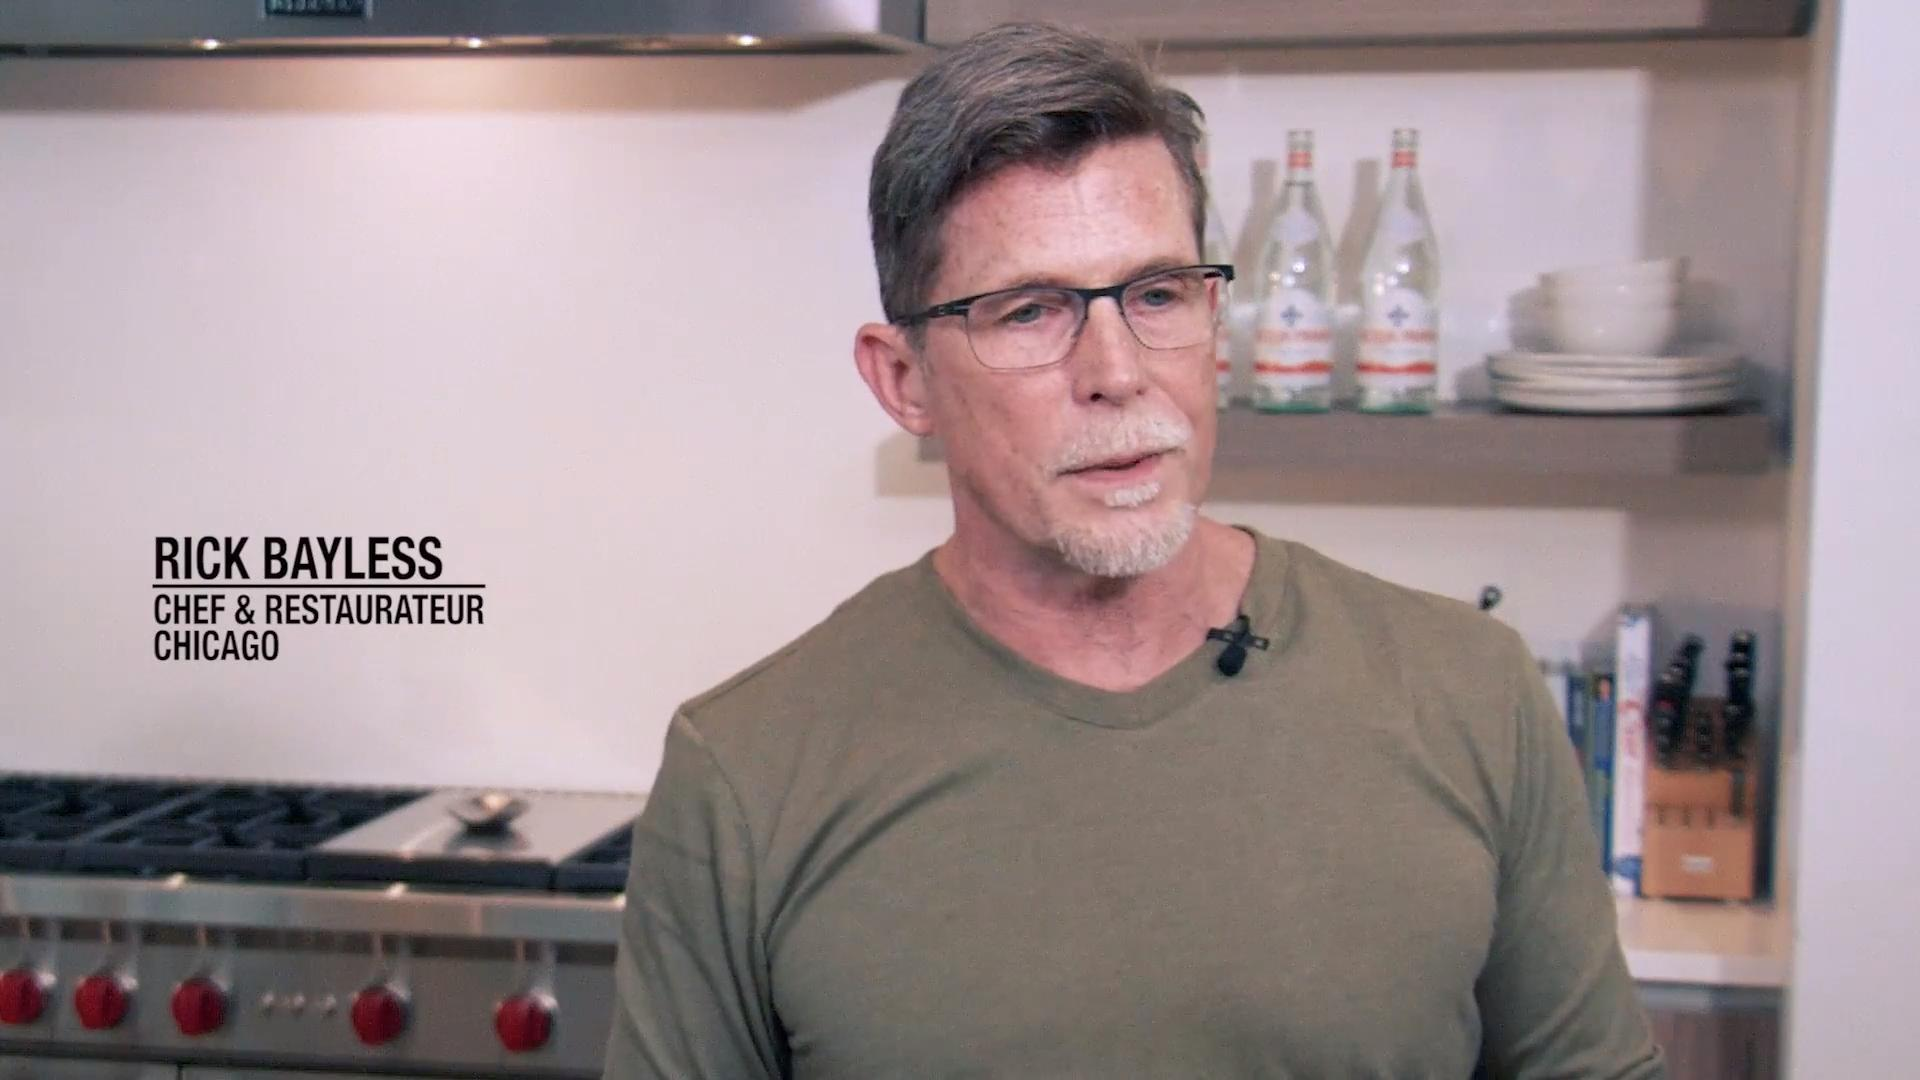 Rick Bayless Interview: On Mentorship and the State of the Restaurant Industry Today